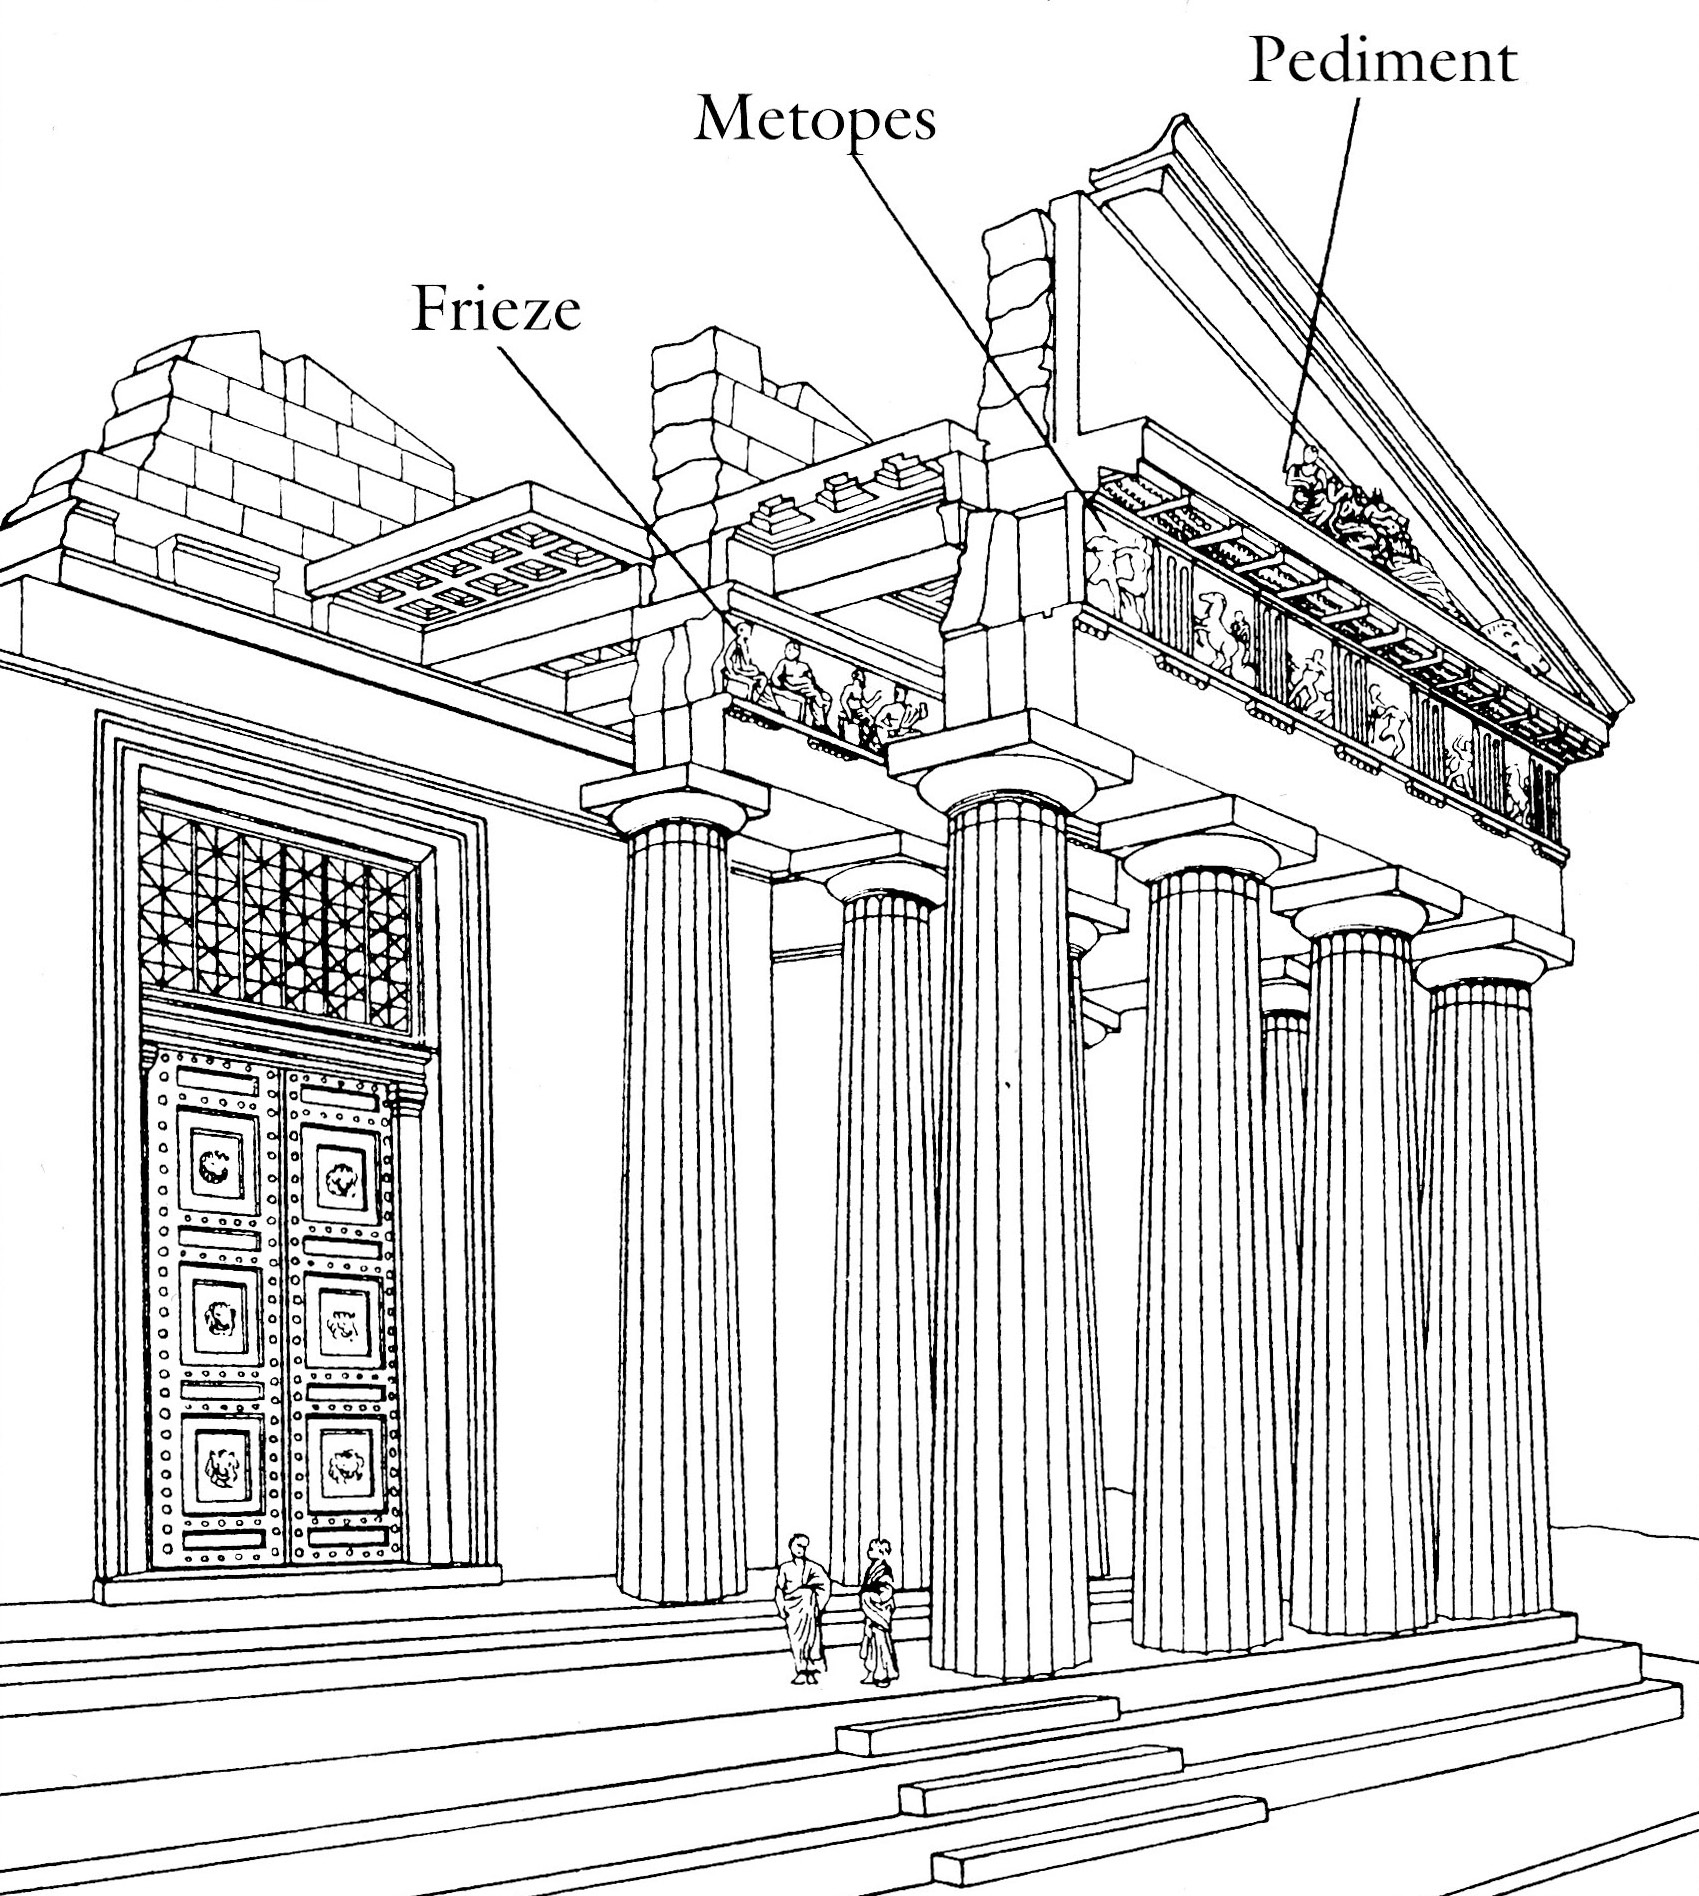 an introduction to the history and an analysis of greek architecture The greek buildings that were constructed in the ancient times, on the other   ancient greek architecture - provides a brief introduction on greece's history, the   of archaeology: greek architecture [pdf] – provides a detailed analysis on the .